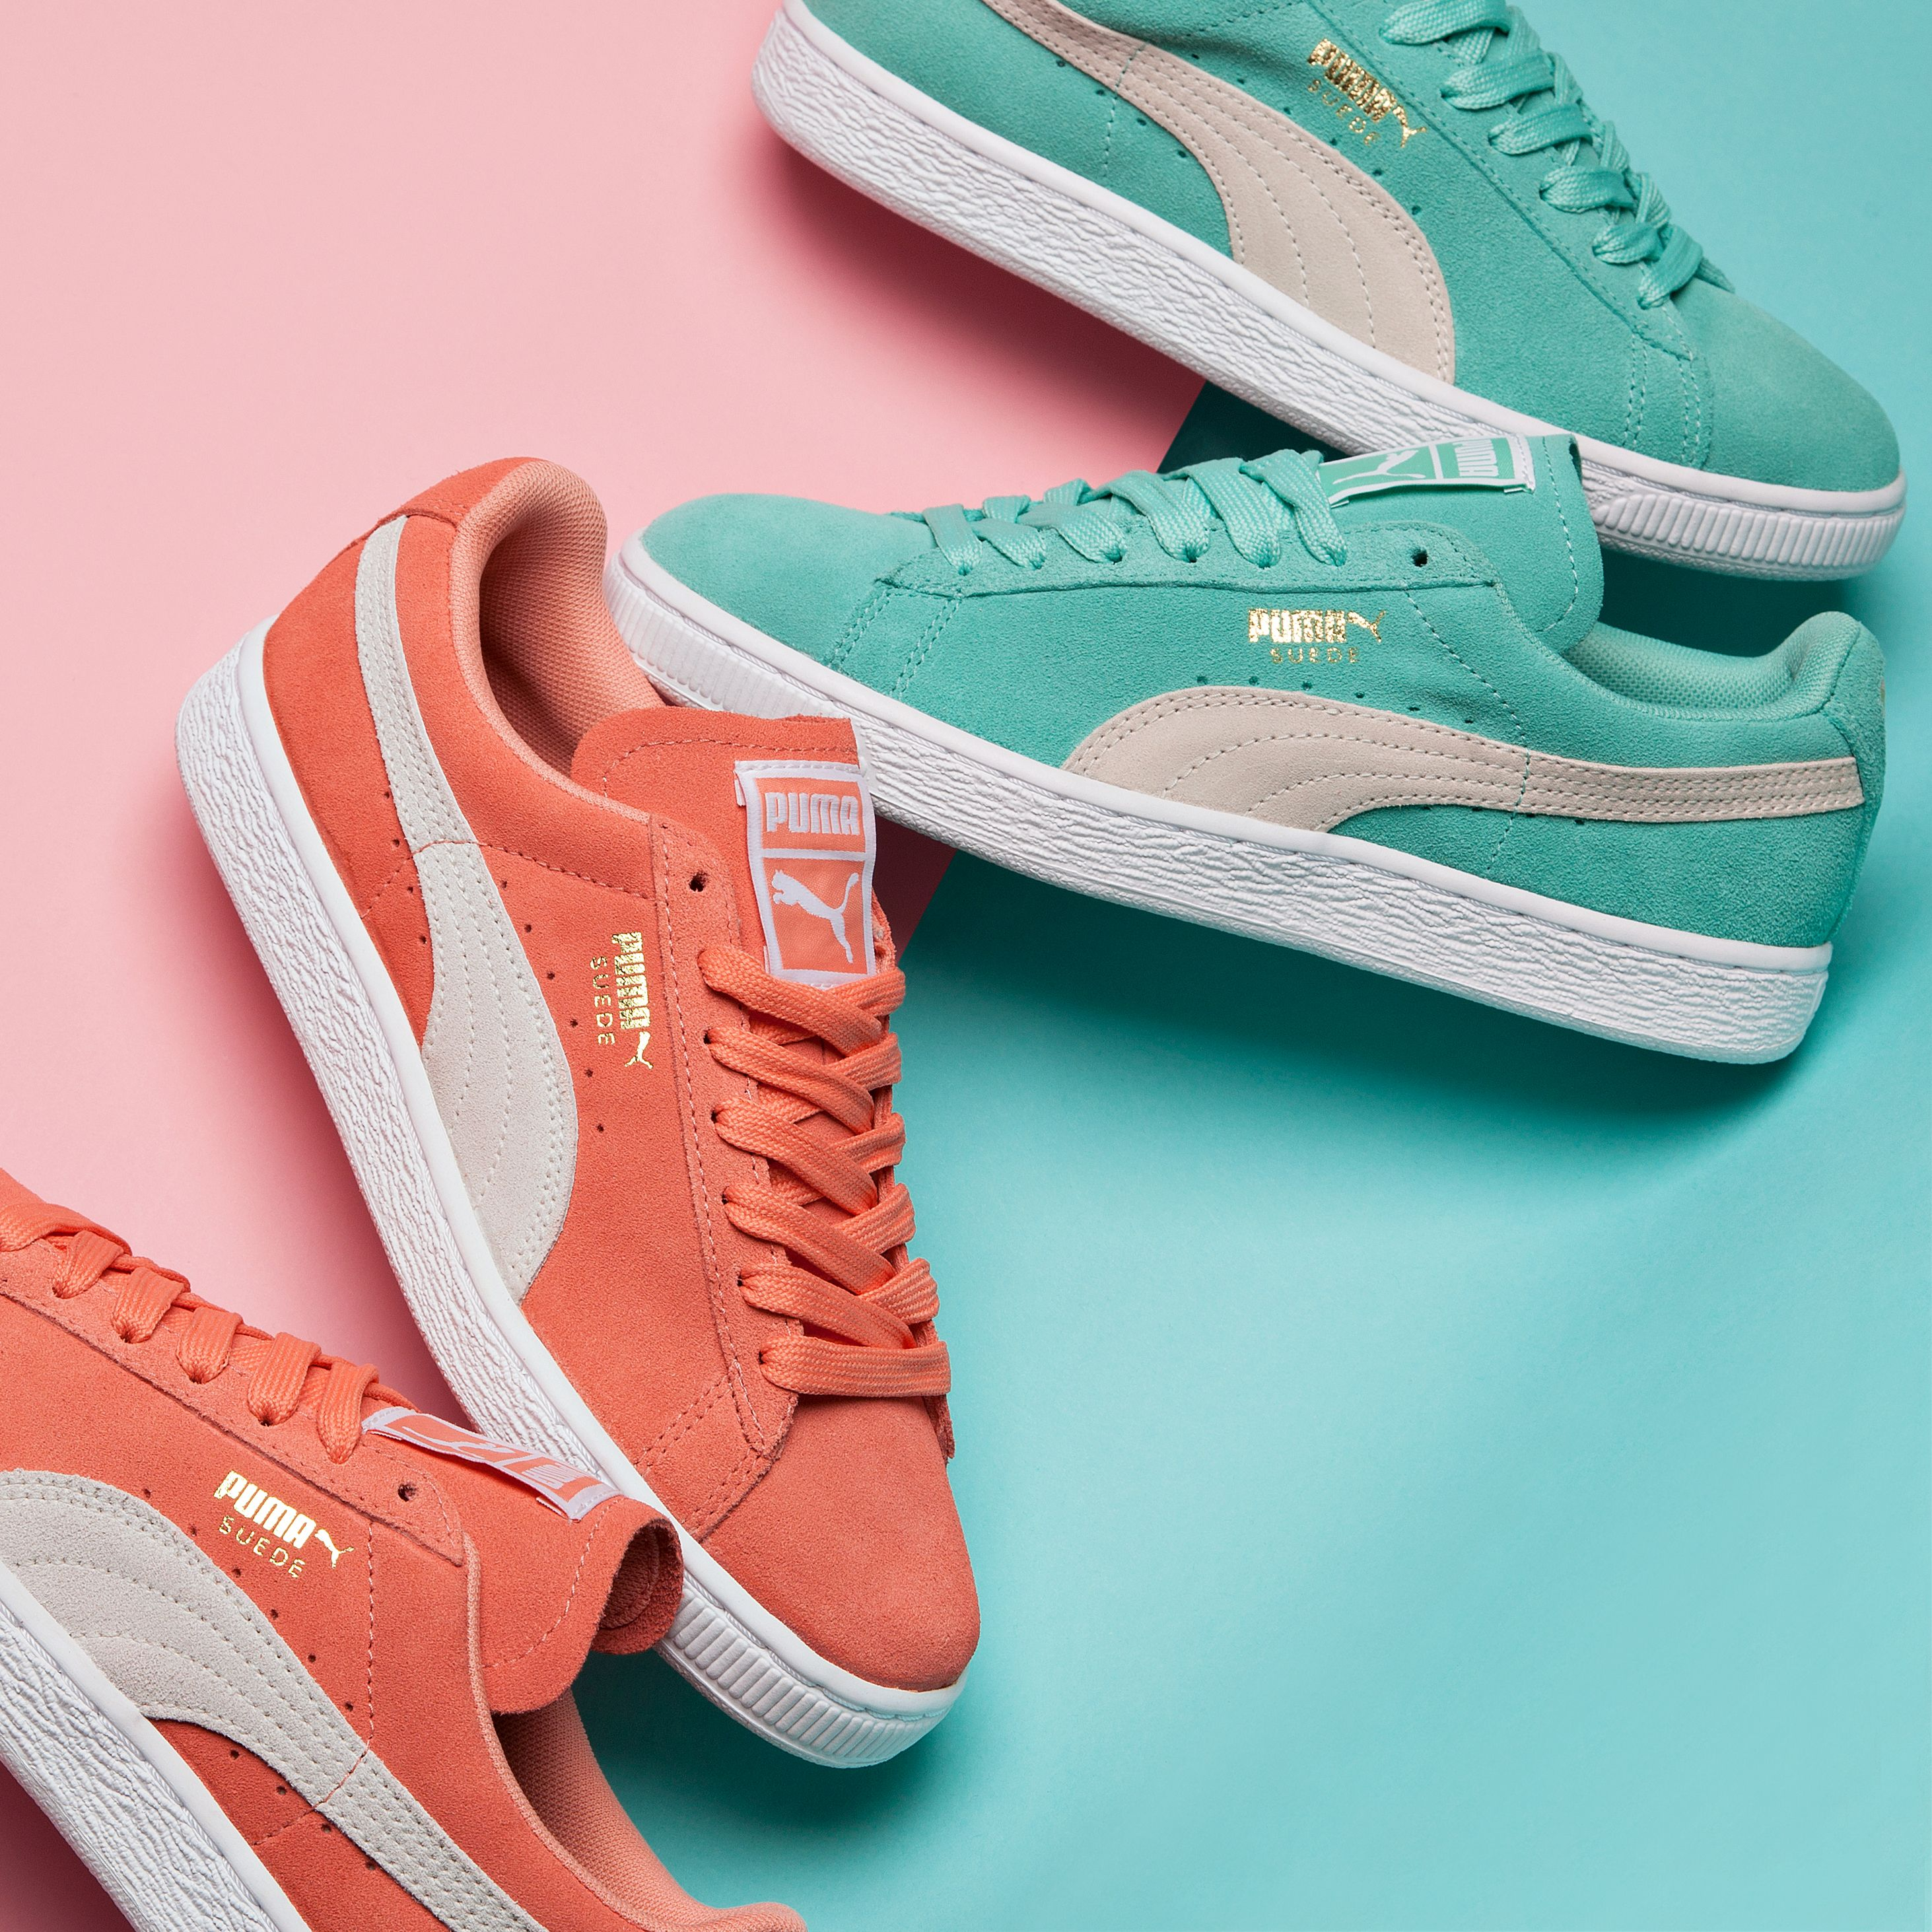 fc8e362657e Step into Spring with the Puma Womens Suede Classic Trainer in Desert  Flower   Holiday.